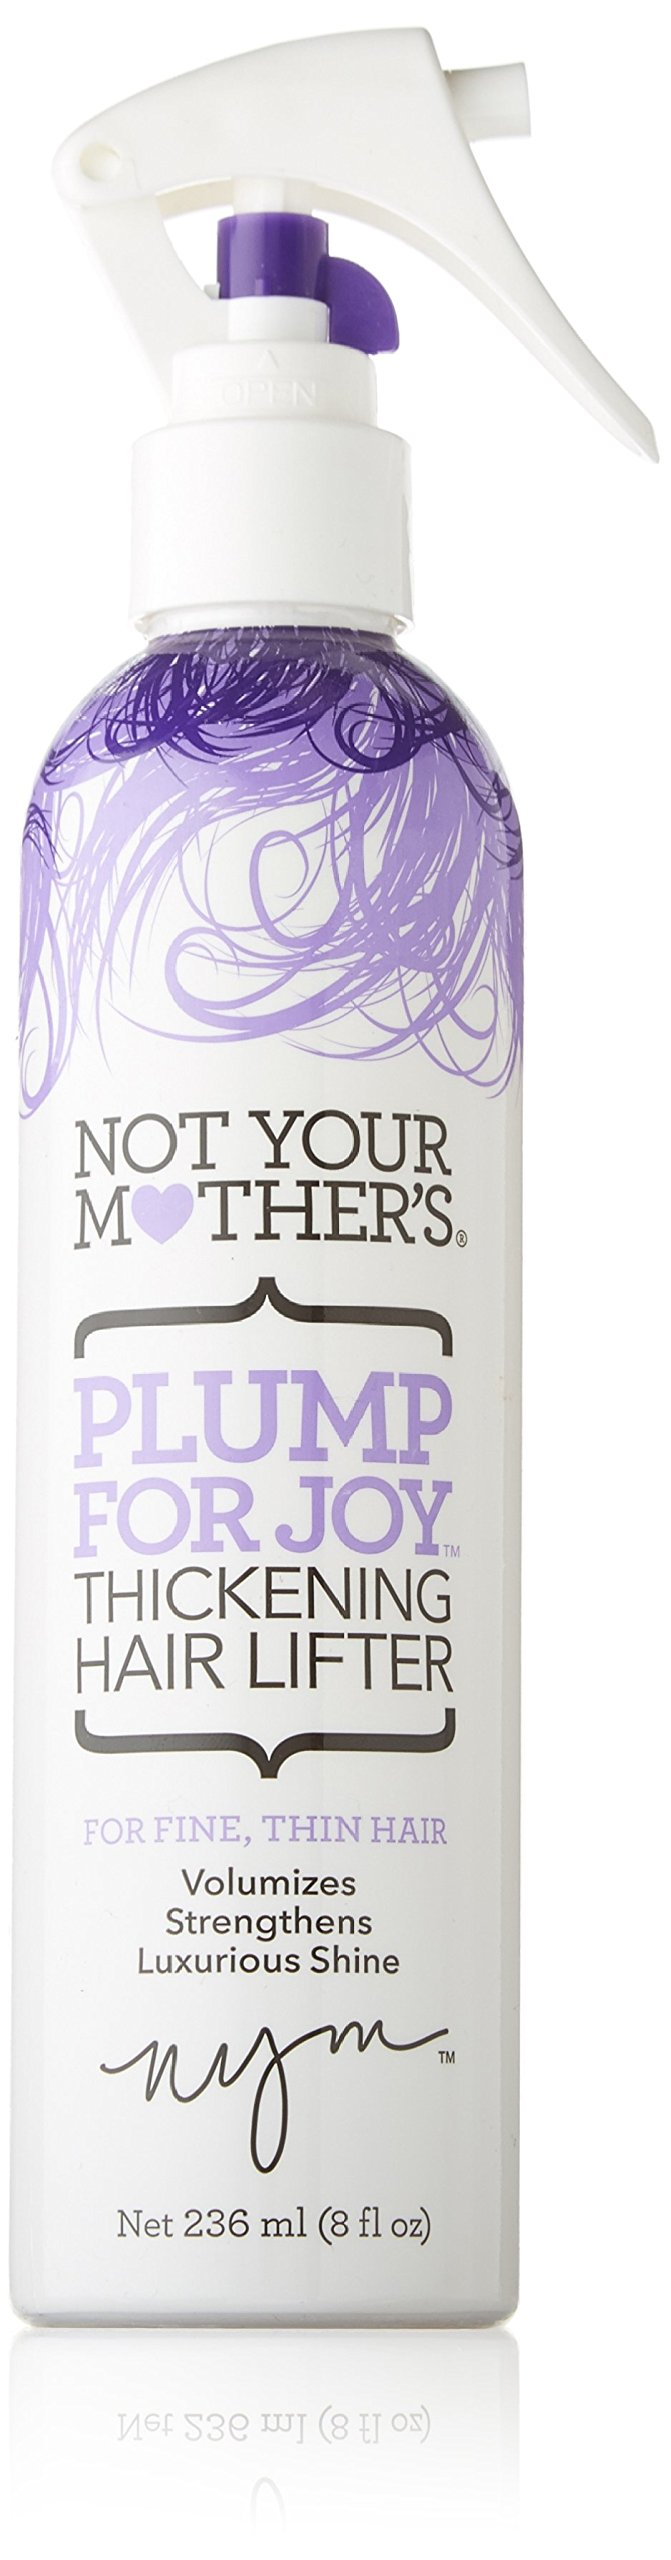 Not Your Mother's Plump for Joy Thickening Hair Lifter, 8 Ounce